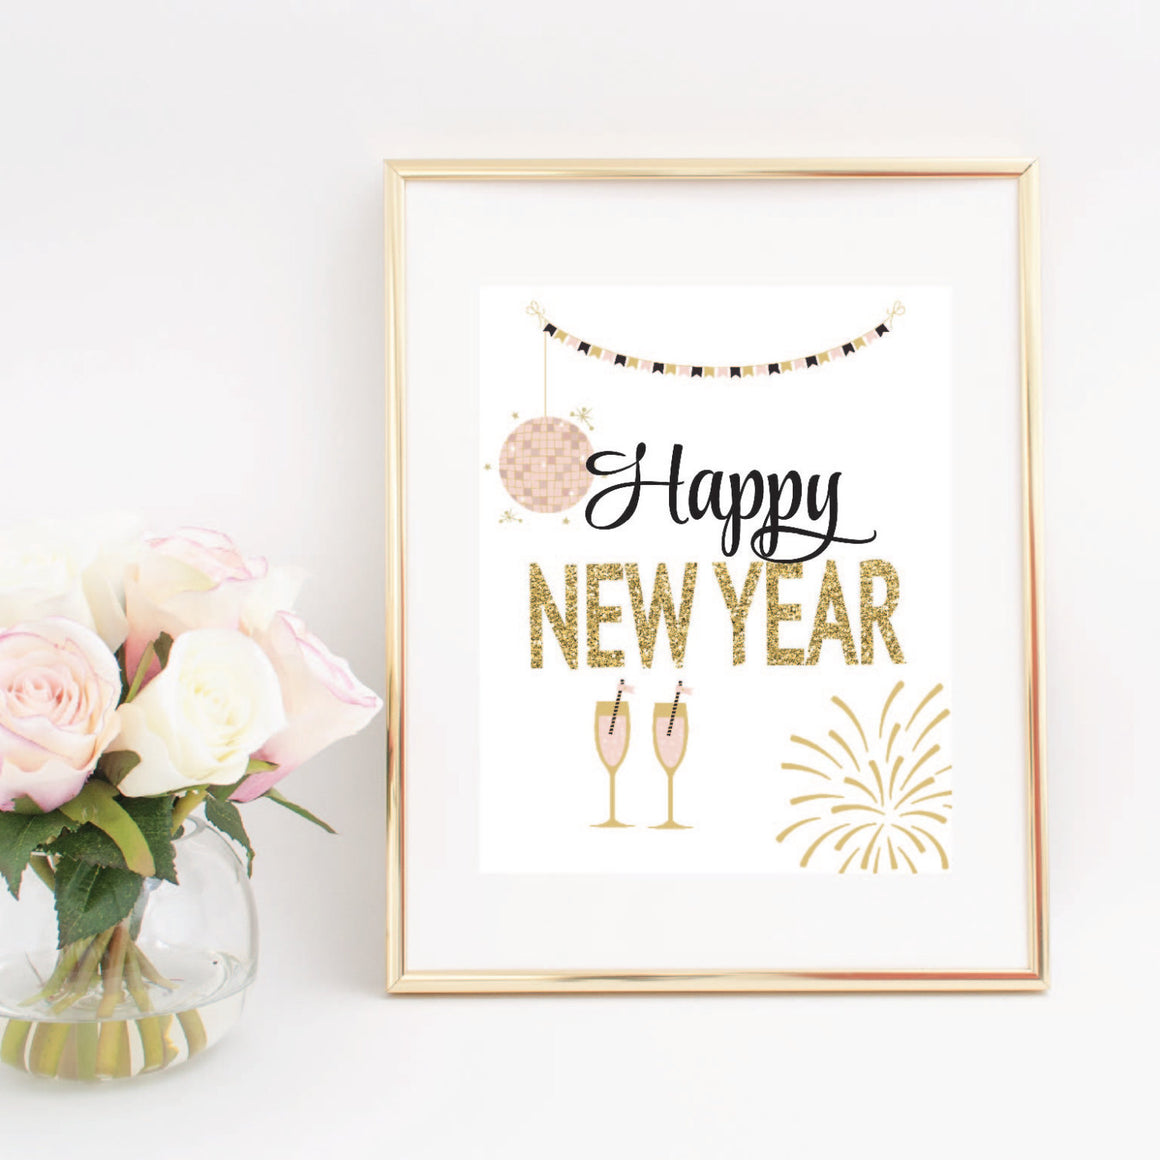 Happy New Year with gold and pink champagne glasses, fireworks and string lights digital download in gold frame